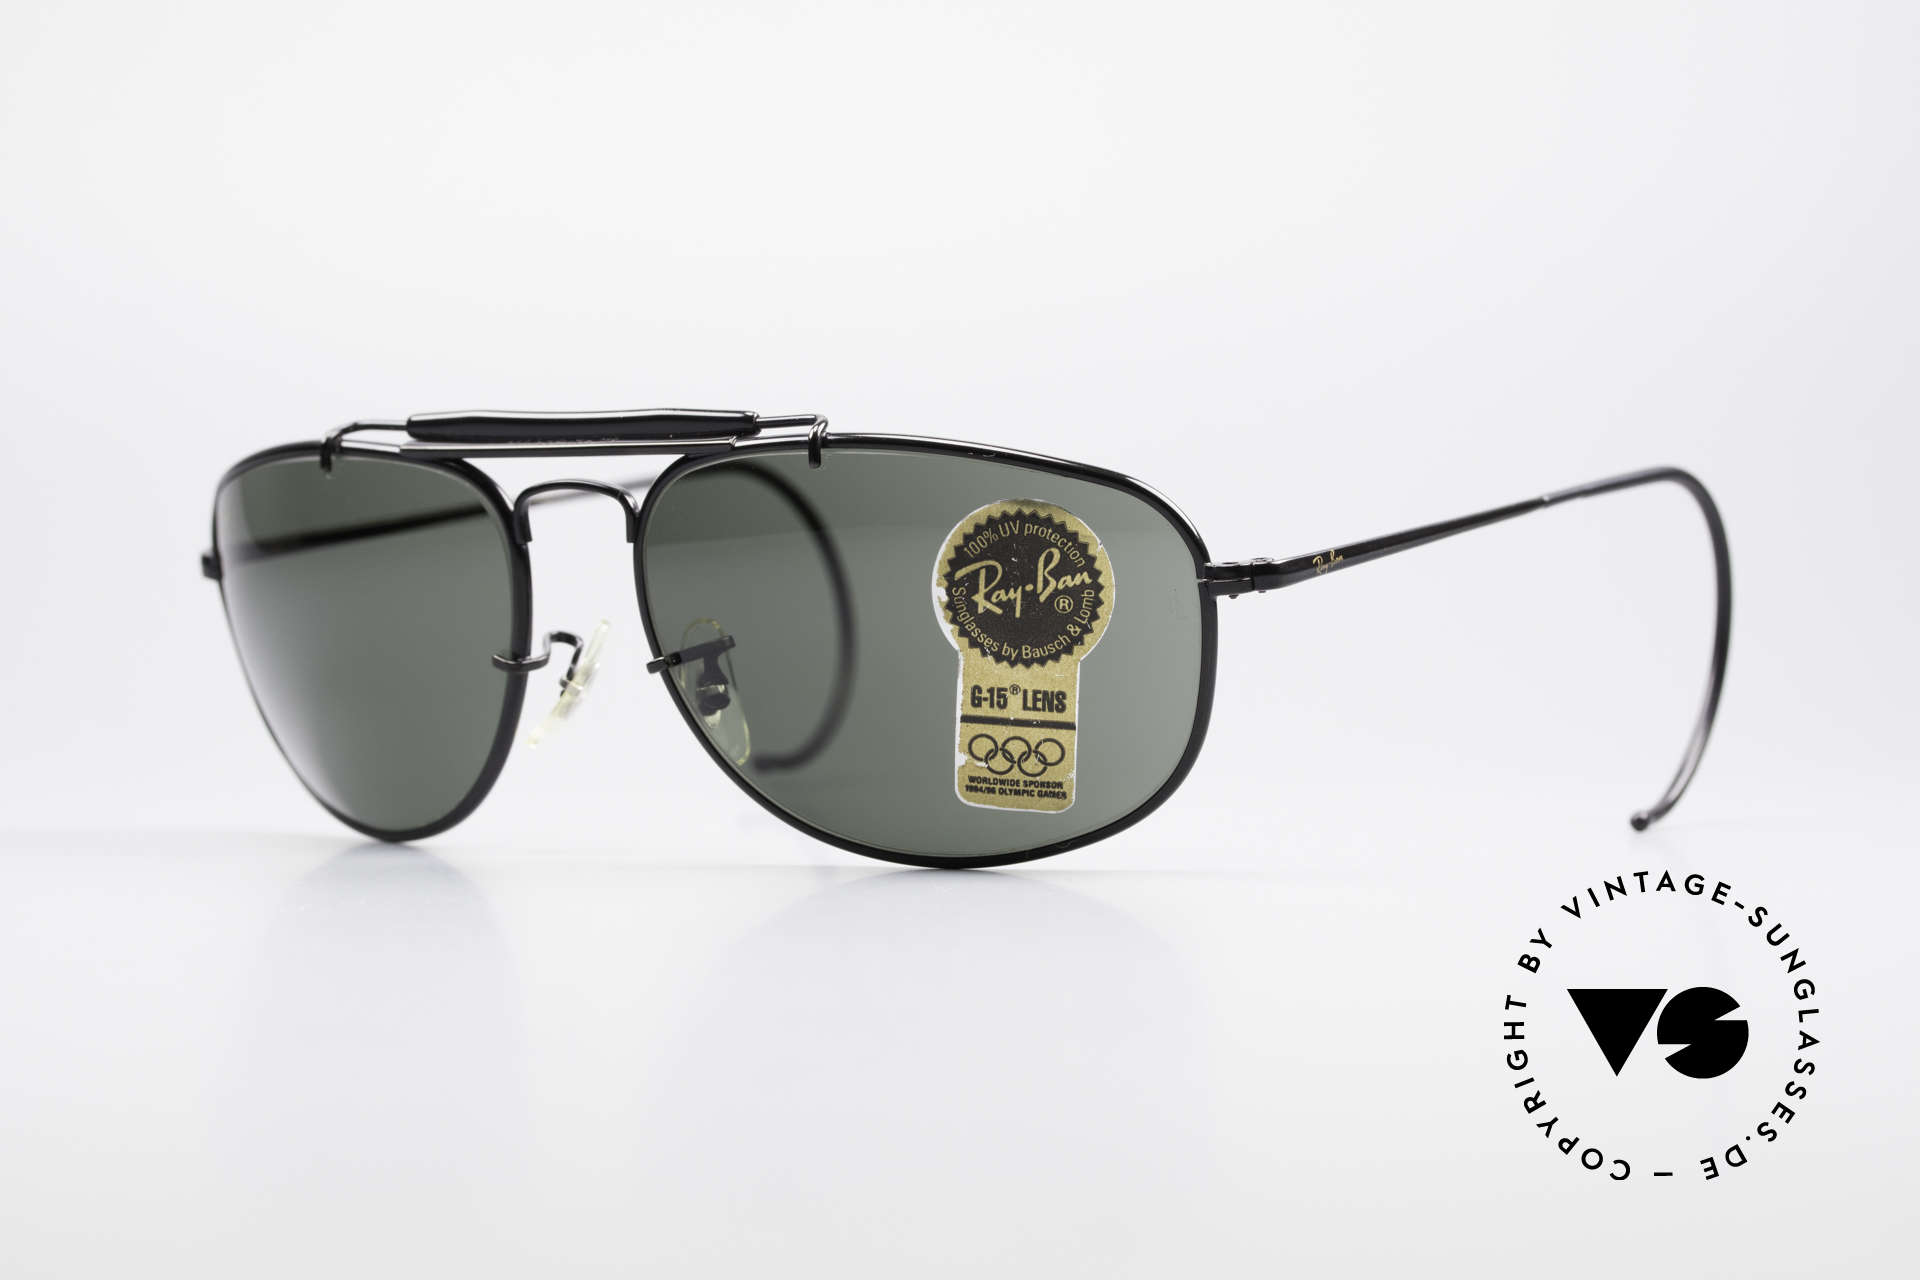 Ray Ban Sport Metal 1992 Olympic Series B&L USA, vintage RAY-BAN Sonnenbrille OLYMPIC GAMES 1992, Passend für Herren